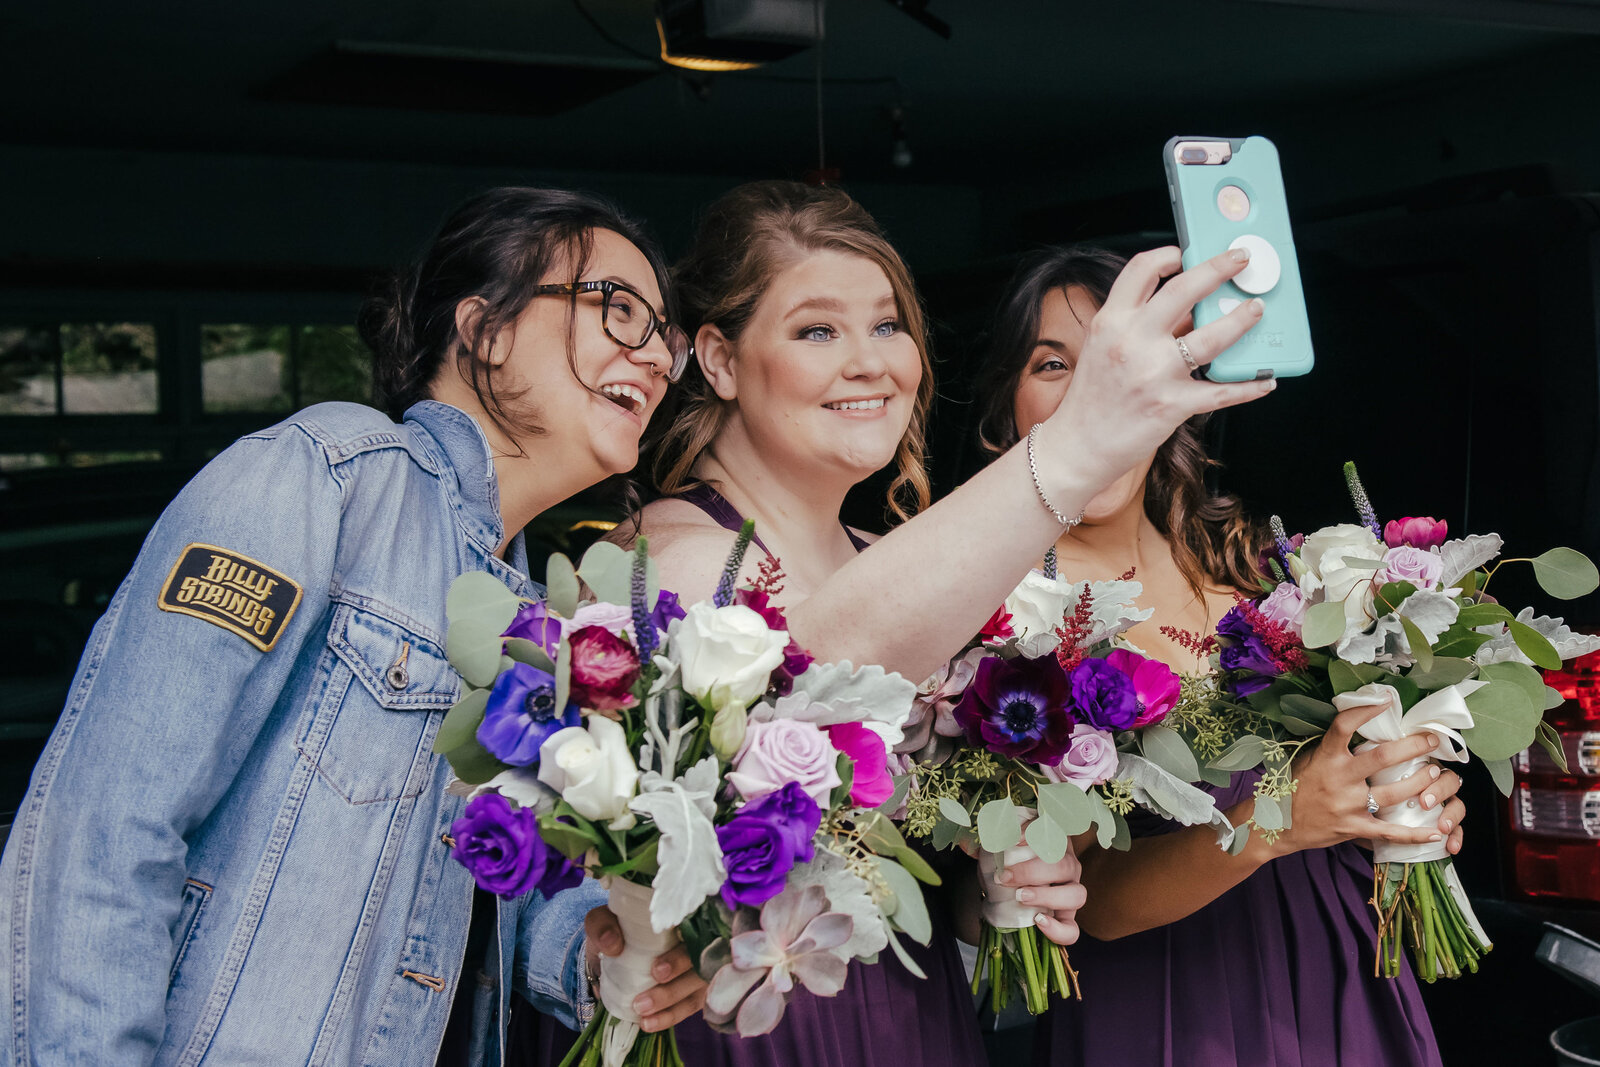 wedding-elgin-bridesmaids-selfie-candid